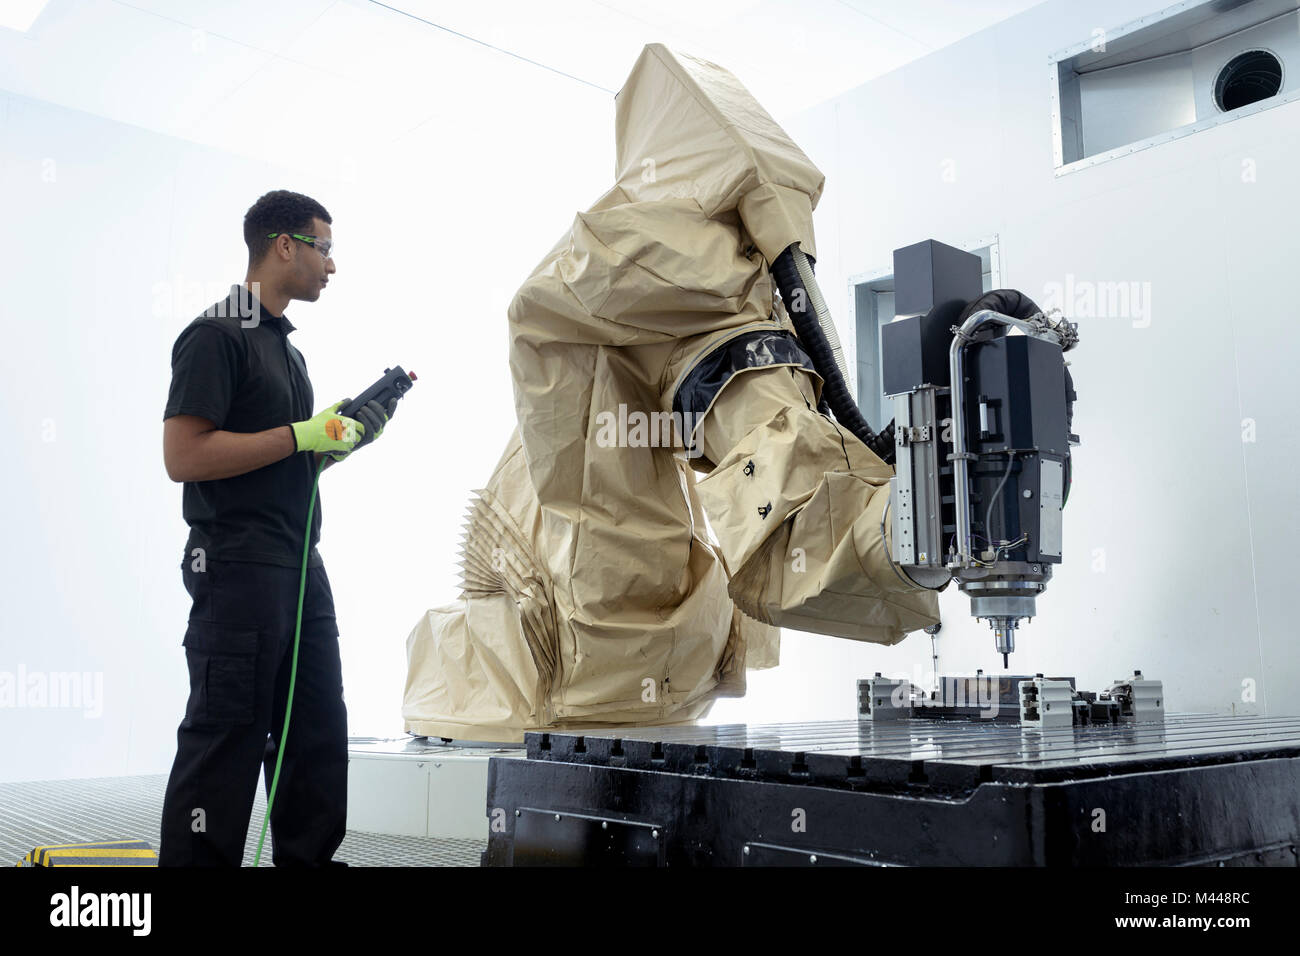 Apprentice robotics engineer with robot in robotics research facility - Stock Image